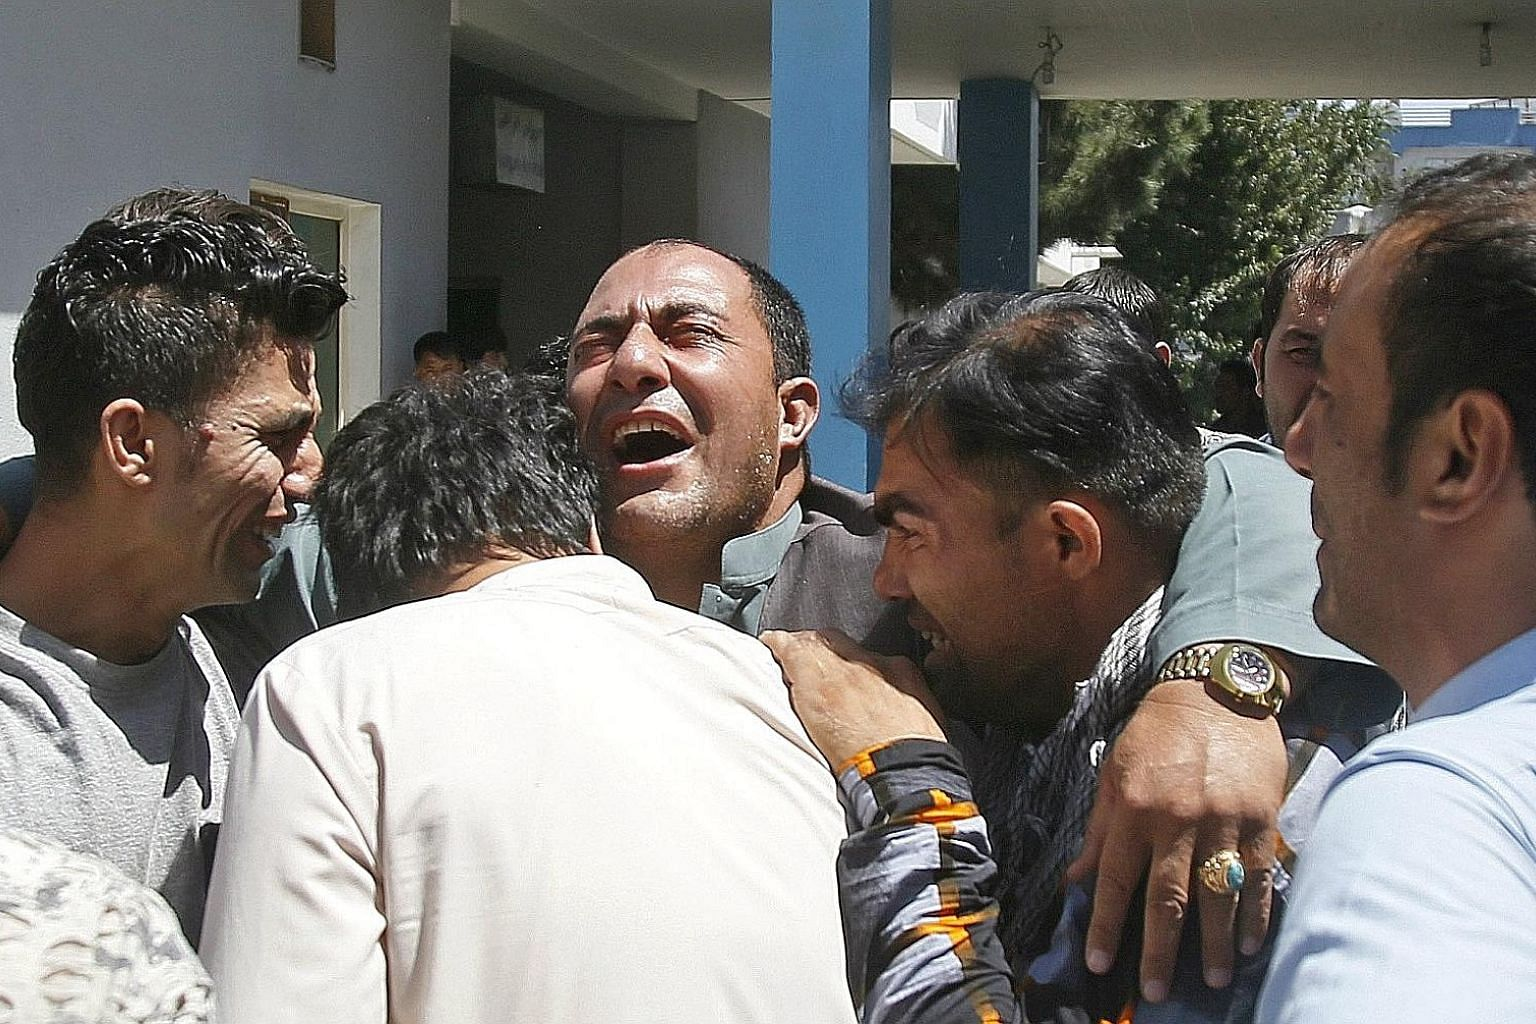 Relatives of the victims of a suicide bomb blast outside a hospital in Kabul, Afghanistan, yesterday. A Taleban suicide attacker set off a car bomb in the western part of Kabul yesterday, killing up to 35 people and wounding more than 40. At least 35